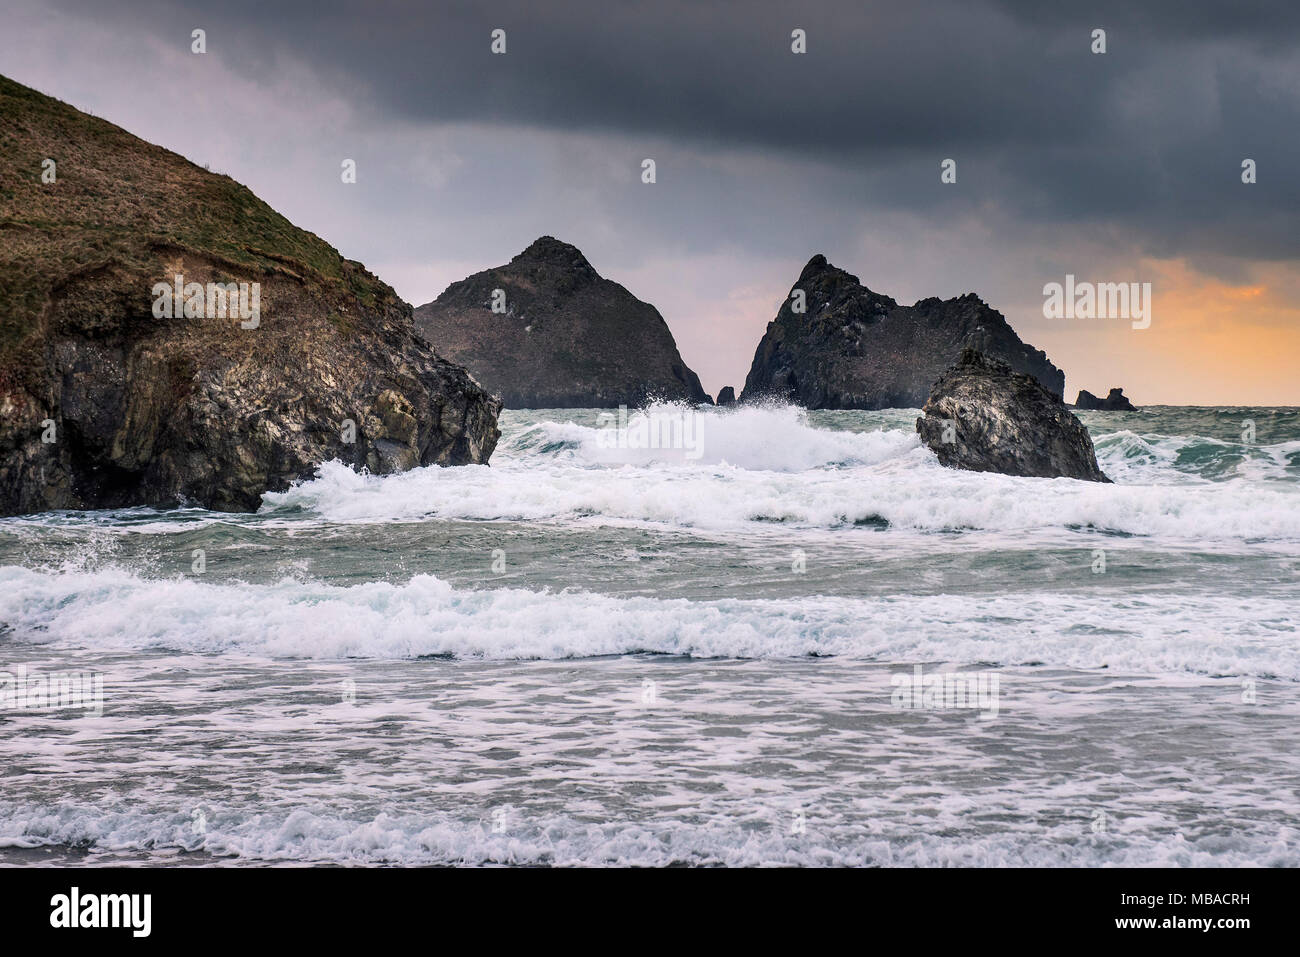 UK weather - Rainclouds gathering at the end of the day at Holywell Bay in Cornwall. - Stock Image